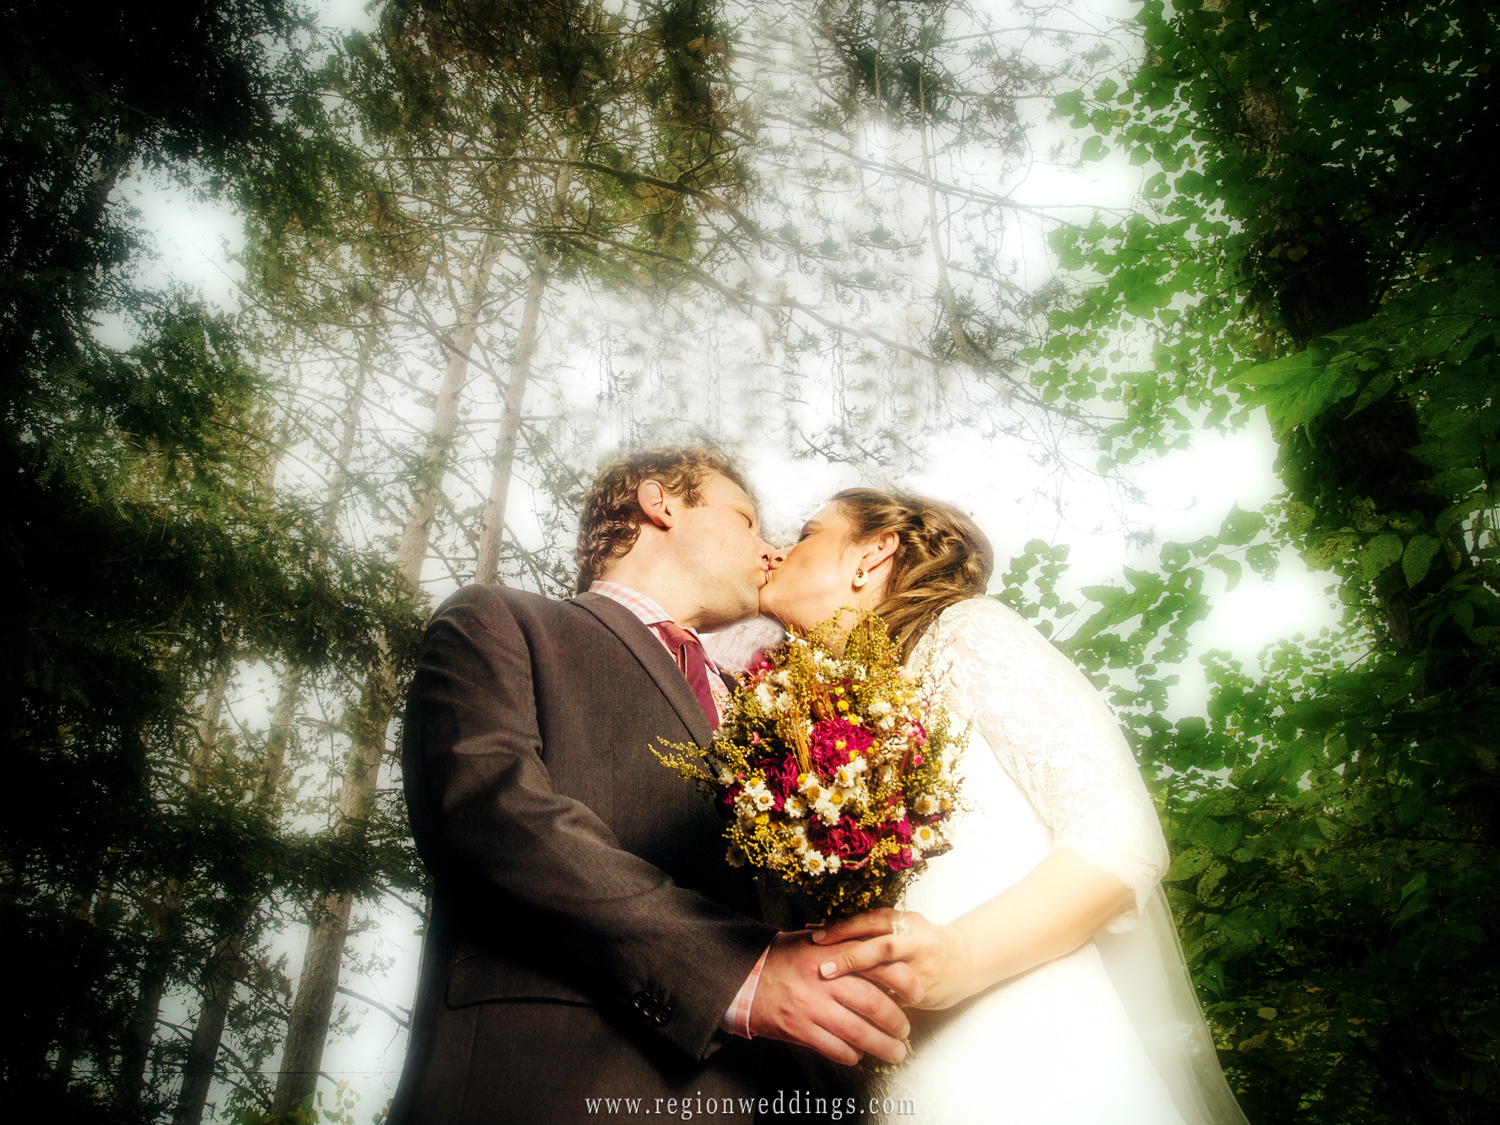 The bride and groom kiss amidst the forest trees in Michigan during the Fall season.